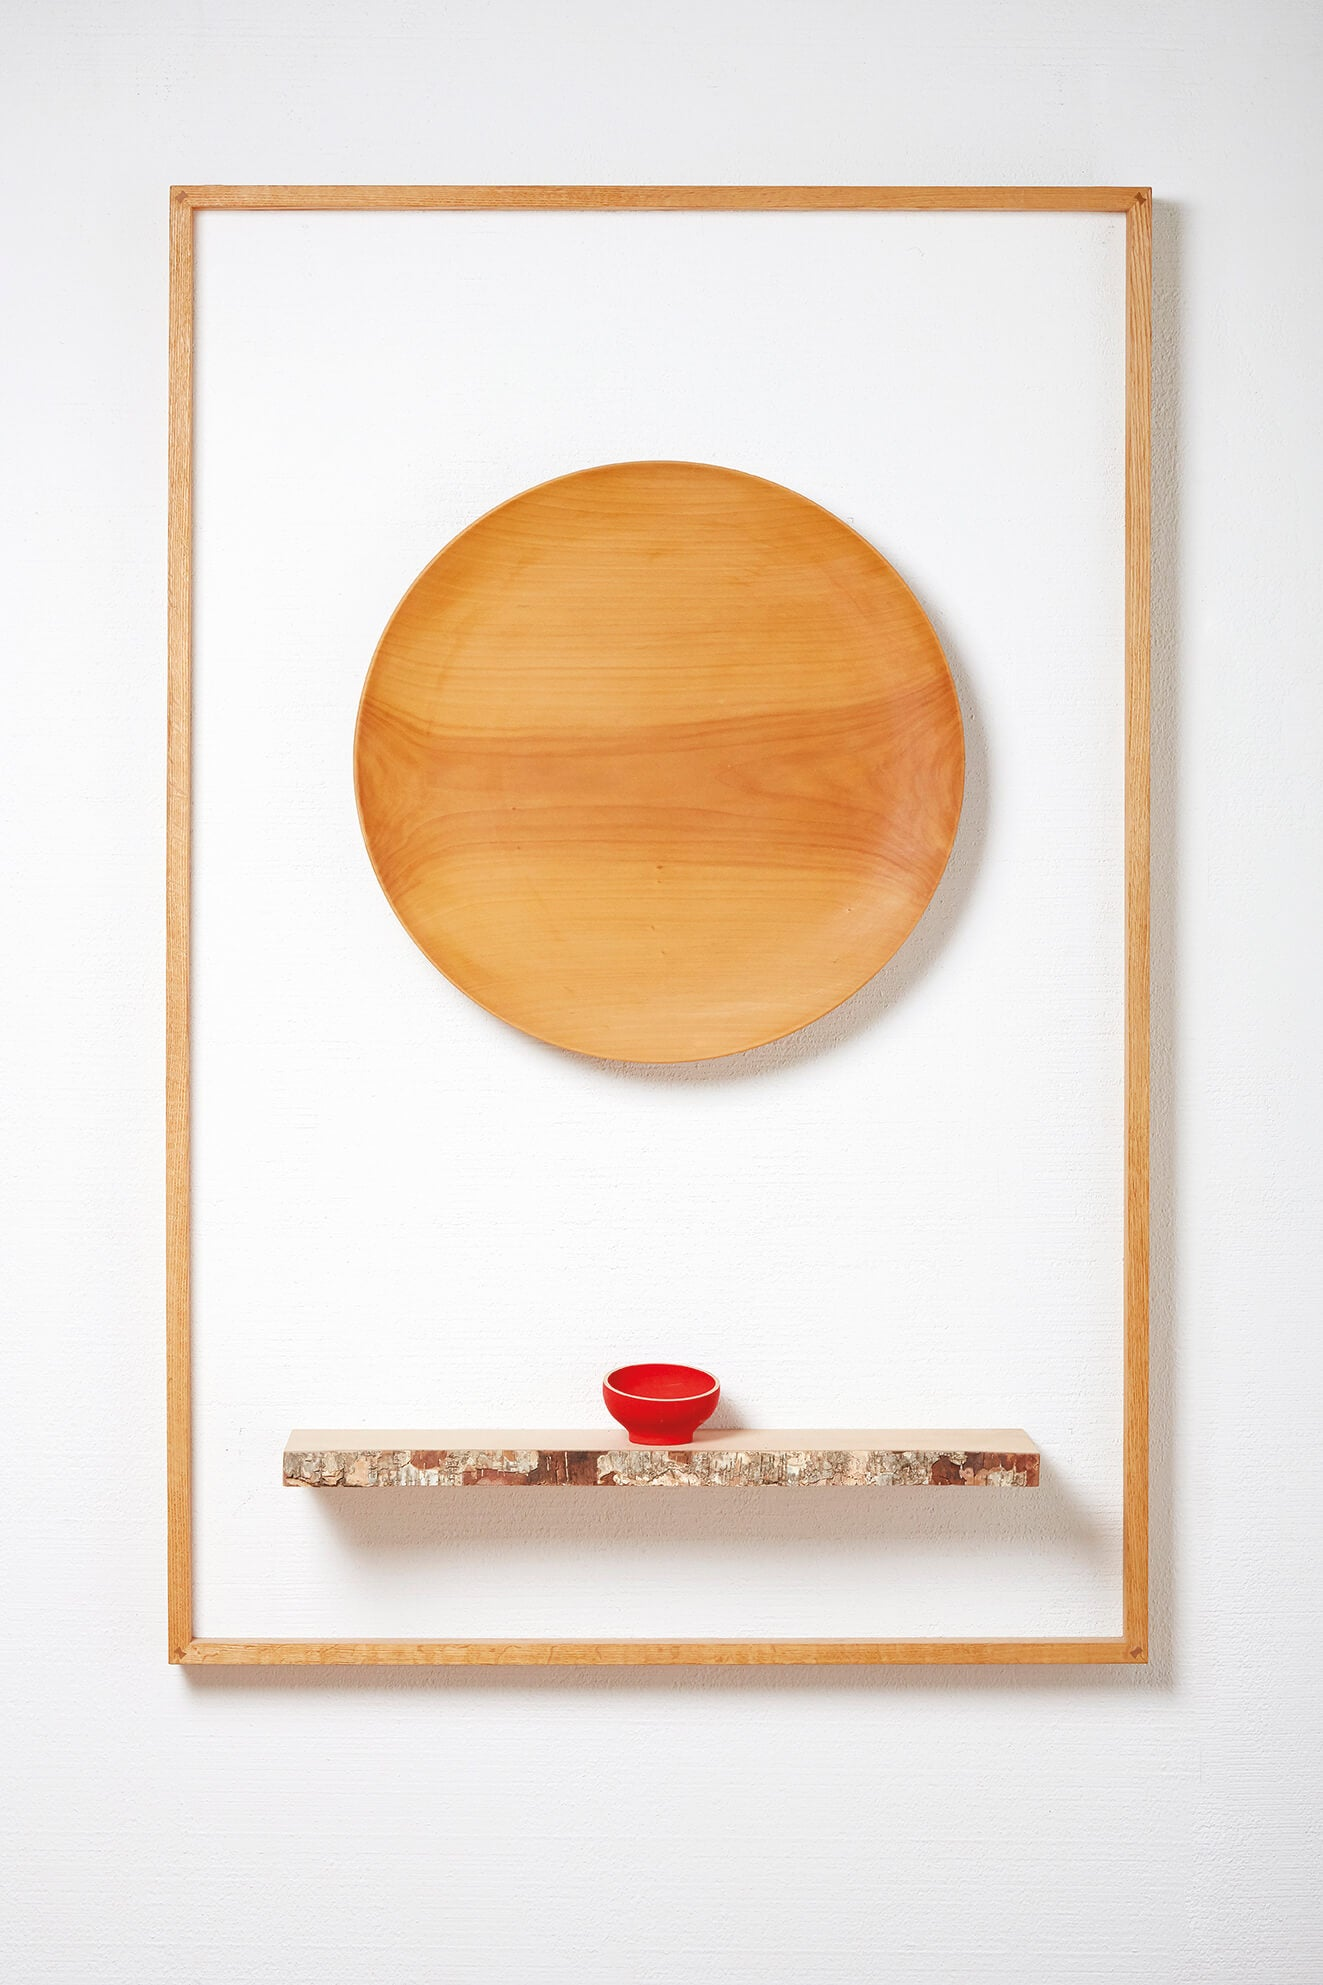 Wooden art hangs on exhibit wall and is finished with Rubio Monocoat wood finish.